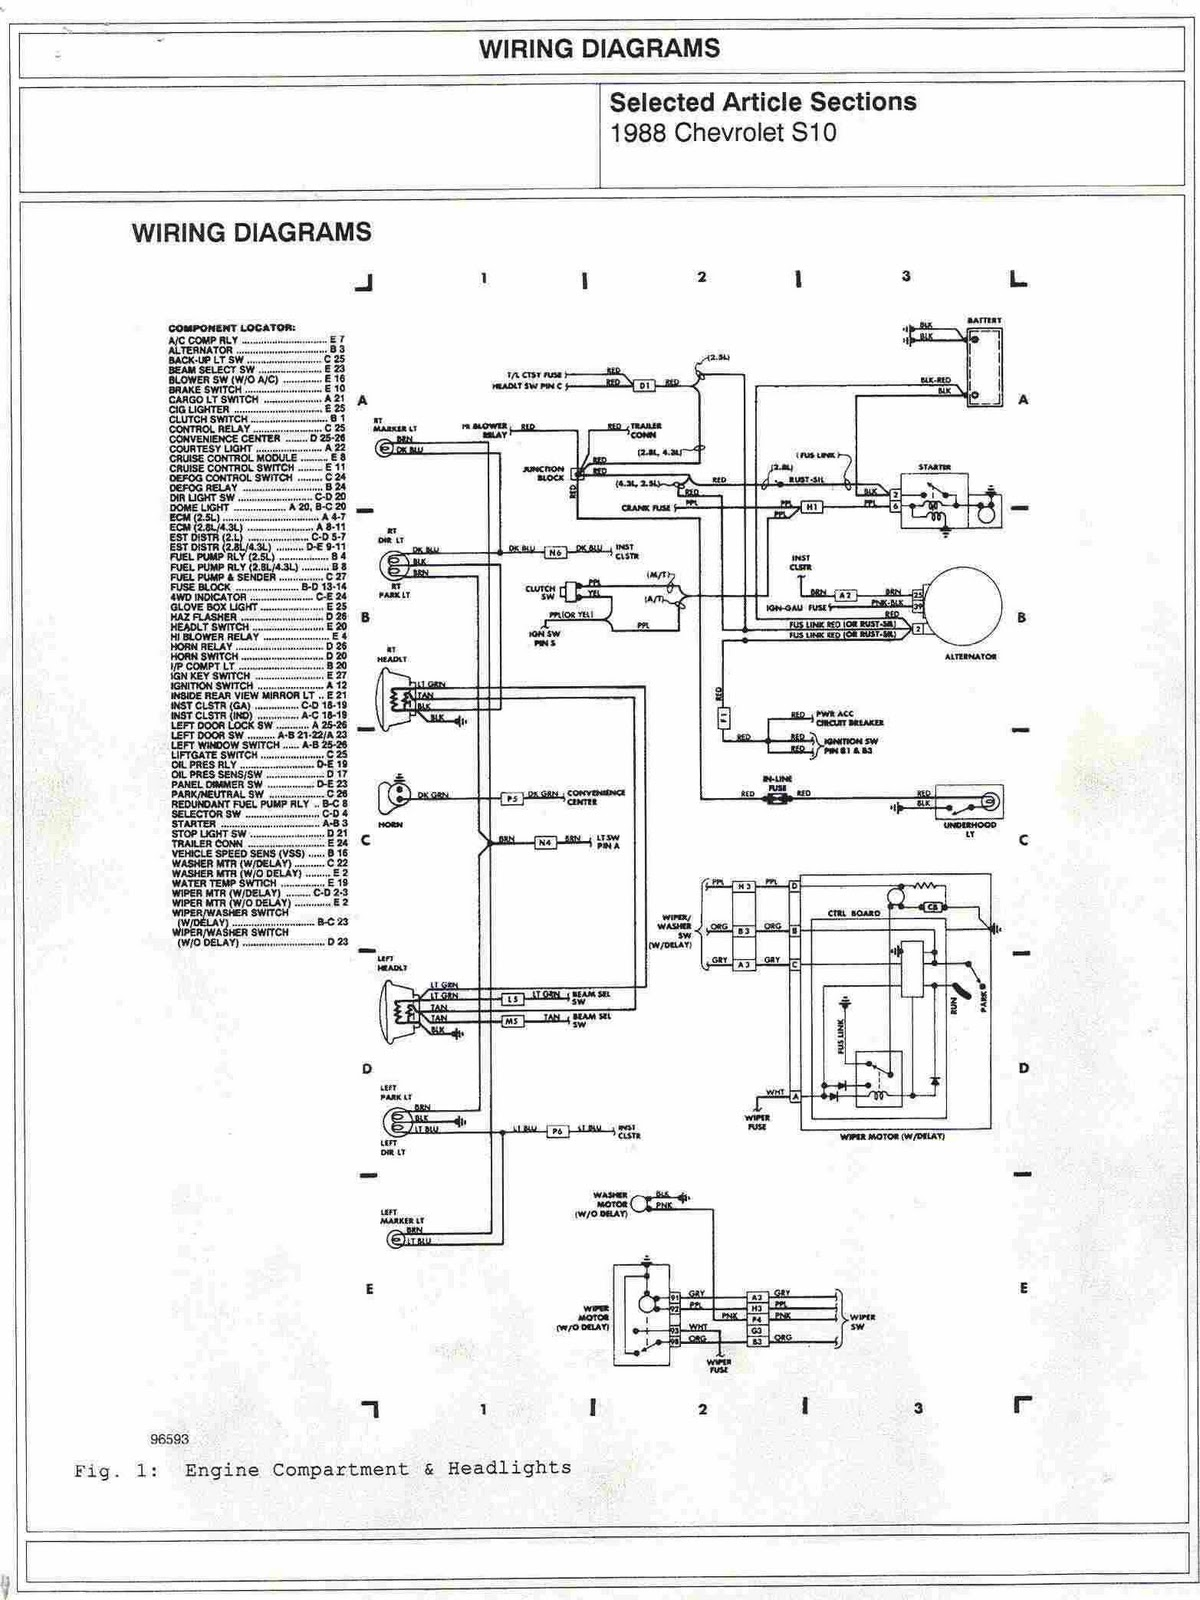 1988+Chevrolet+S10+Engine+Compartment+and+Headlights+Wiring+Diagrams 1988 chevrolet s10 engine compartment and headlights wiring 1988 toyota pickup tail light wiring diagram at reclaimingppi.co